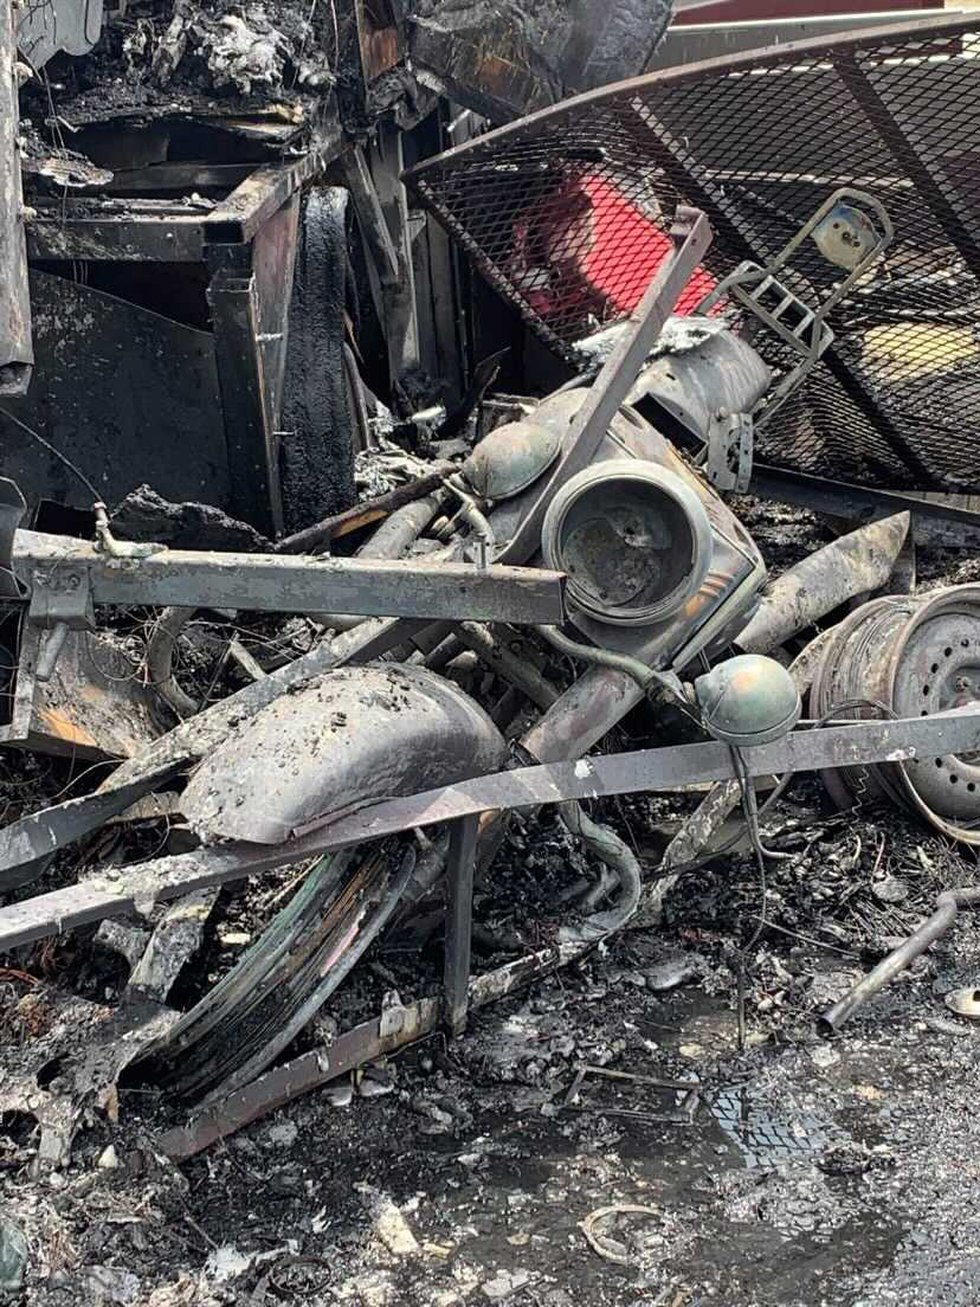 Charred motorcycle from Hwy 38 crash (Source: Brightsville Volunteer Fire Department)